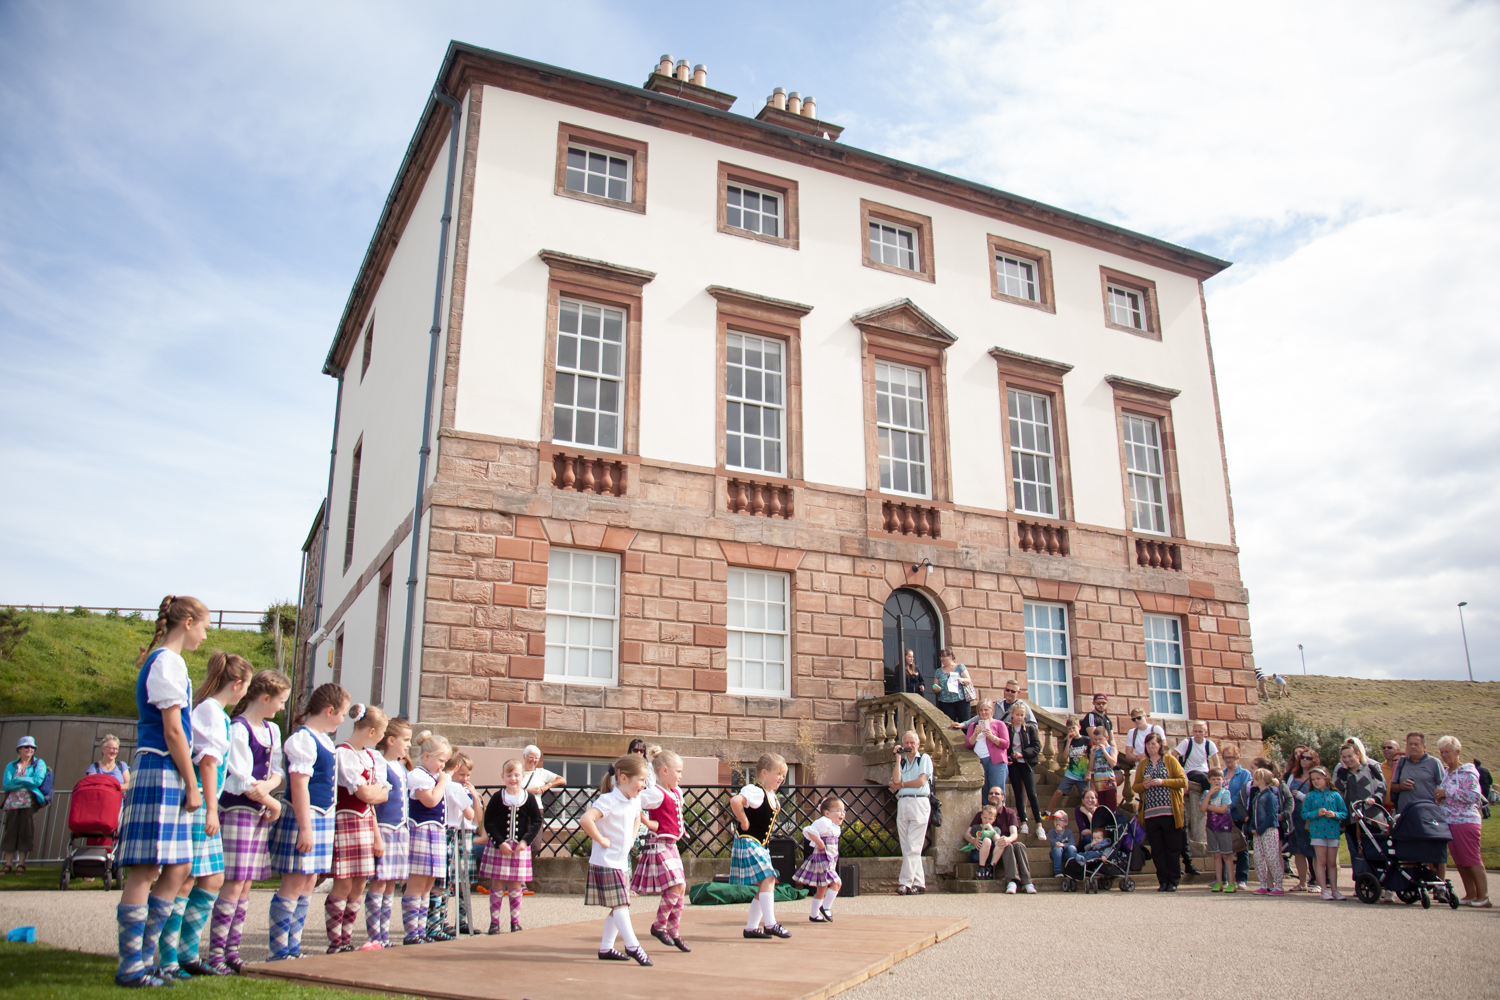 PICTORIAL_BERWICK_eyemouth-gunsgreen-extravaganza-photography-entertainment-party-event-photographer-harbour-gary-dunn-dancers-stilts-performances-speeches-day-out-summer-4589.jpg